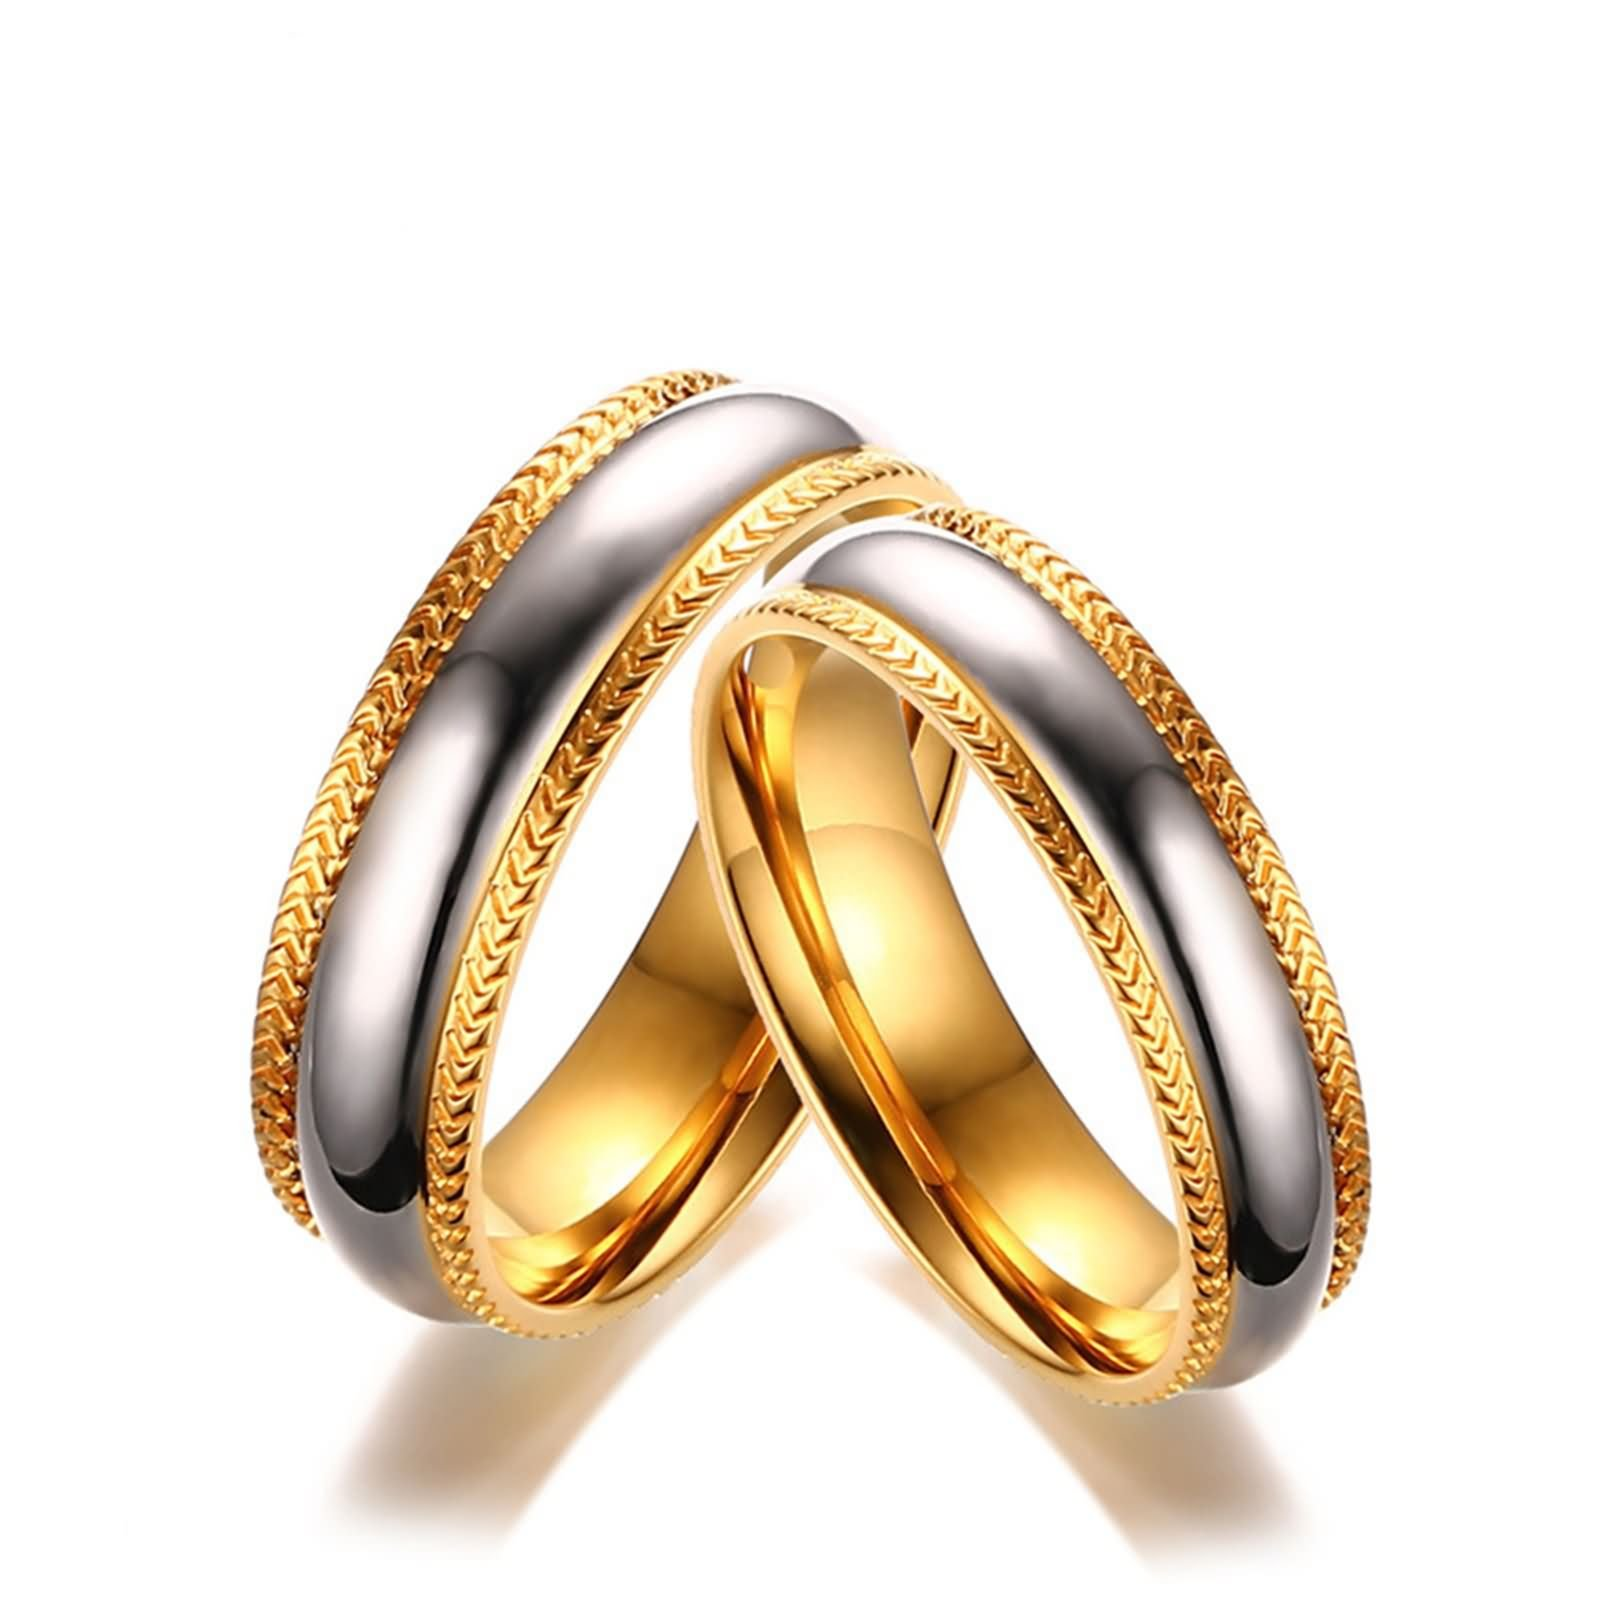 Beydodo Ring Set Wedding Stainless Steel Ring for Couples Two-tone Ring Women Size 6 & Men Size 12